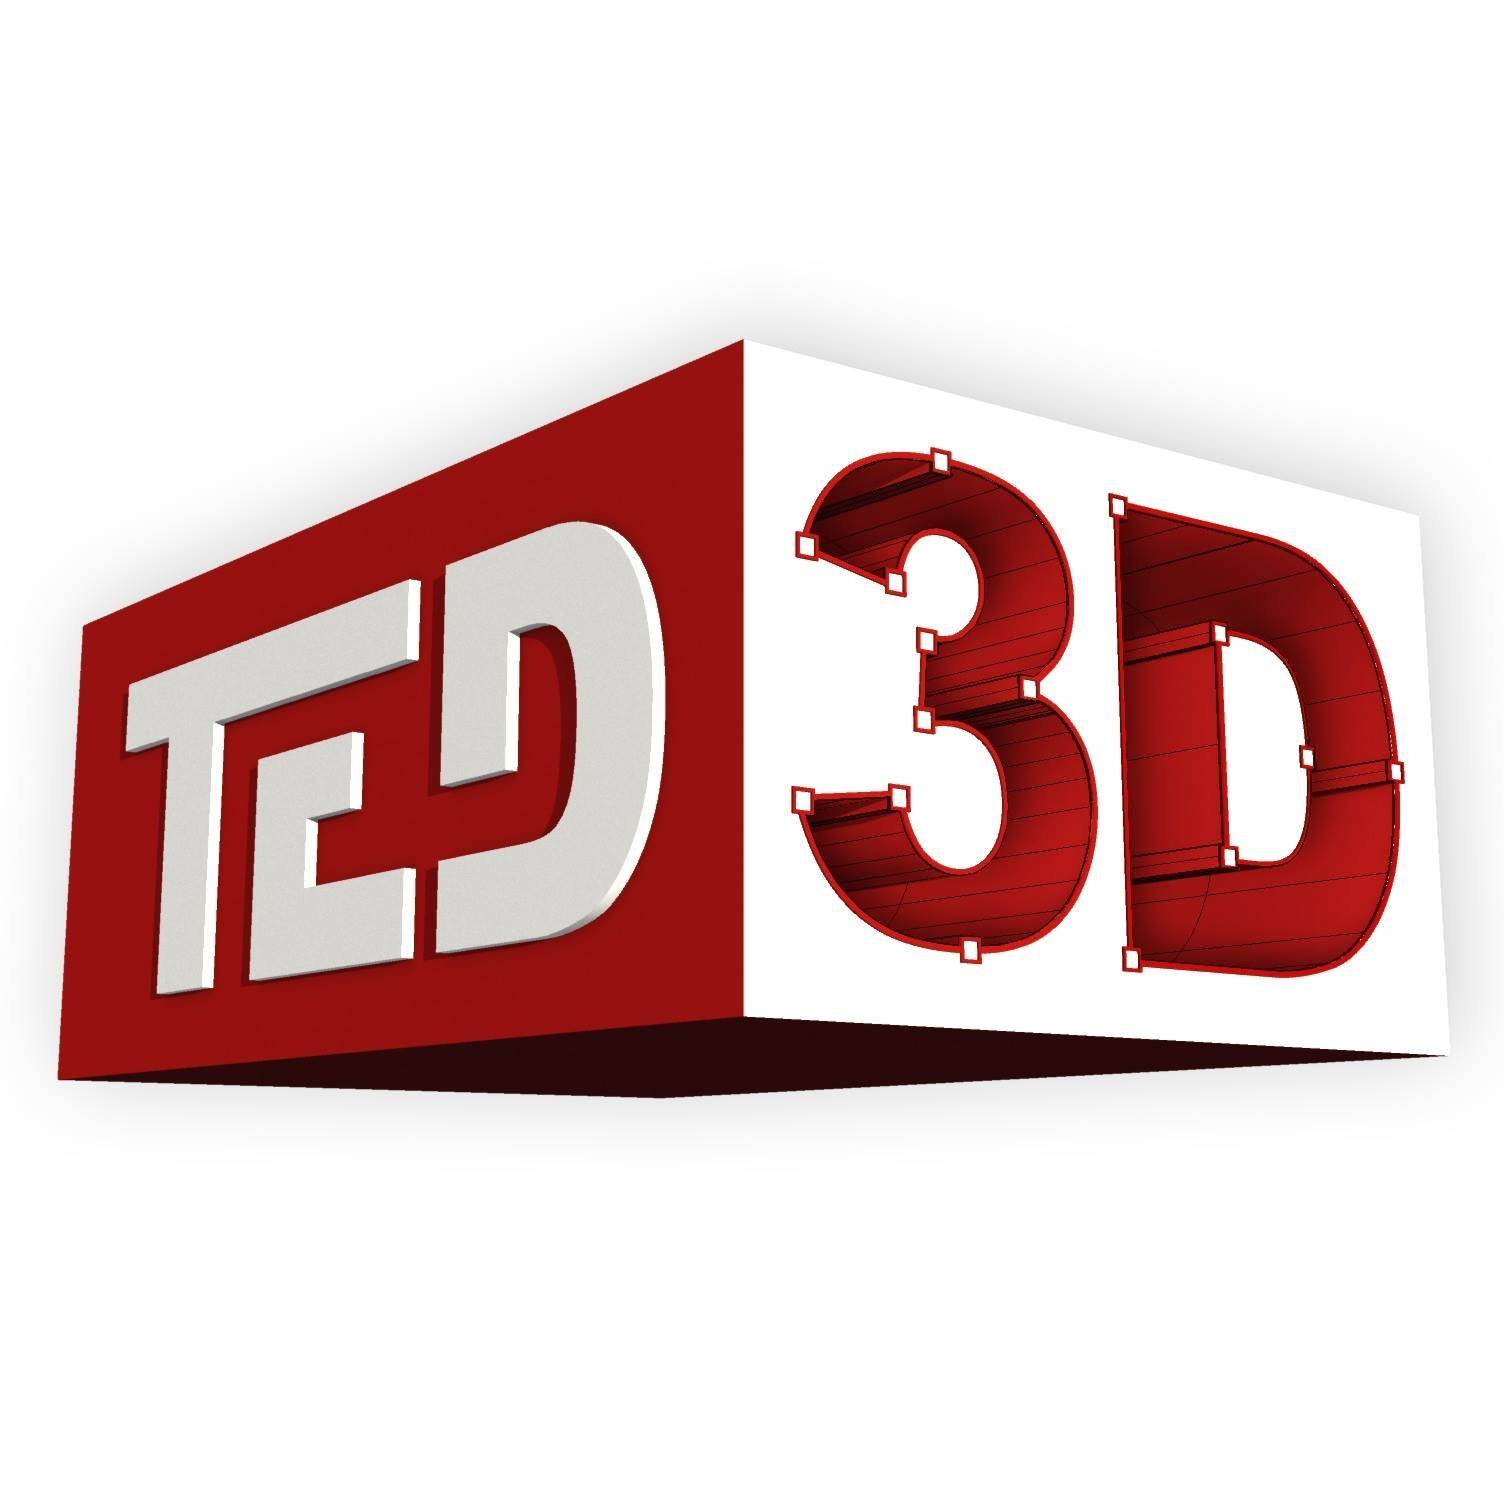 TED3D